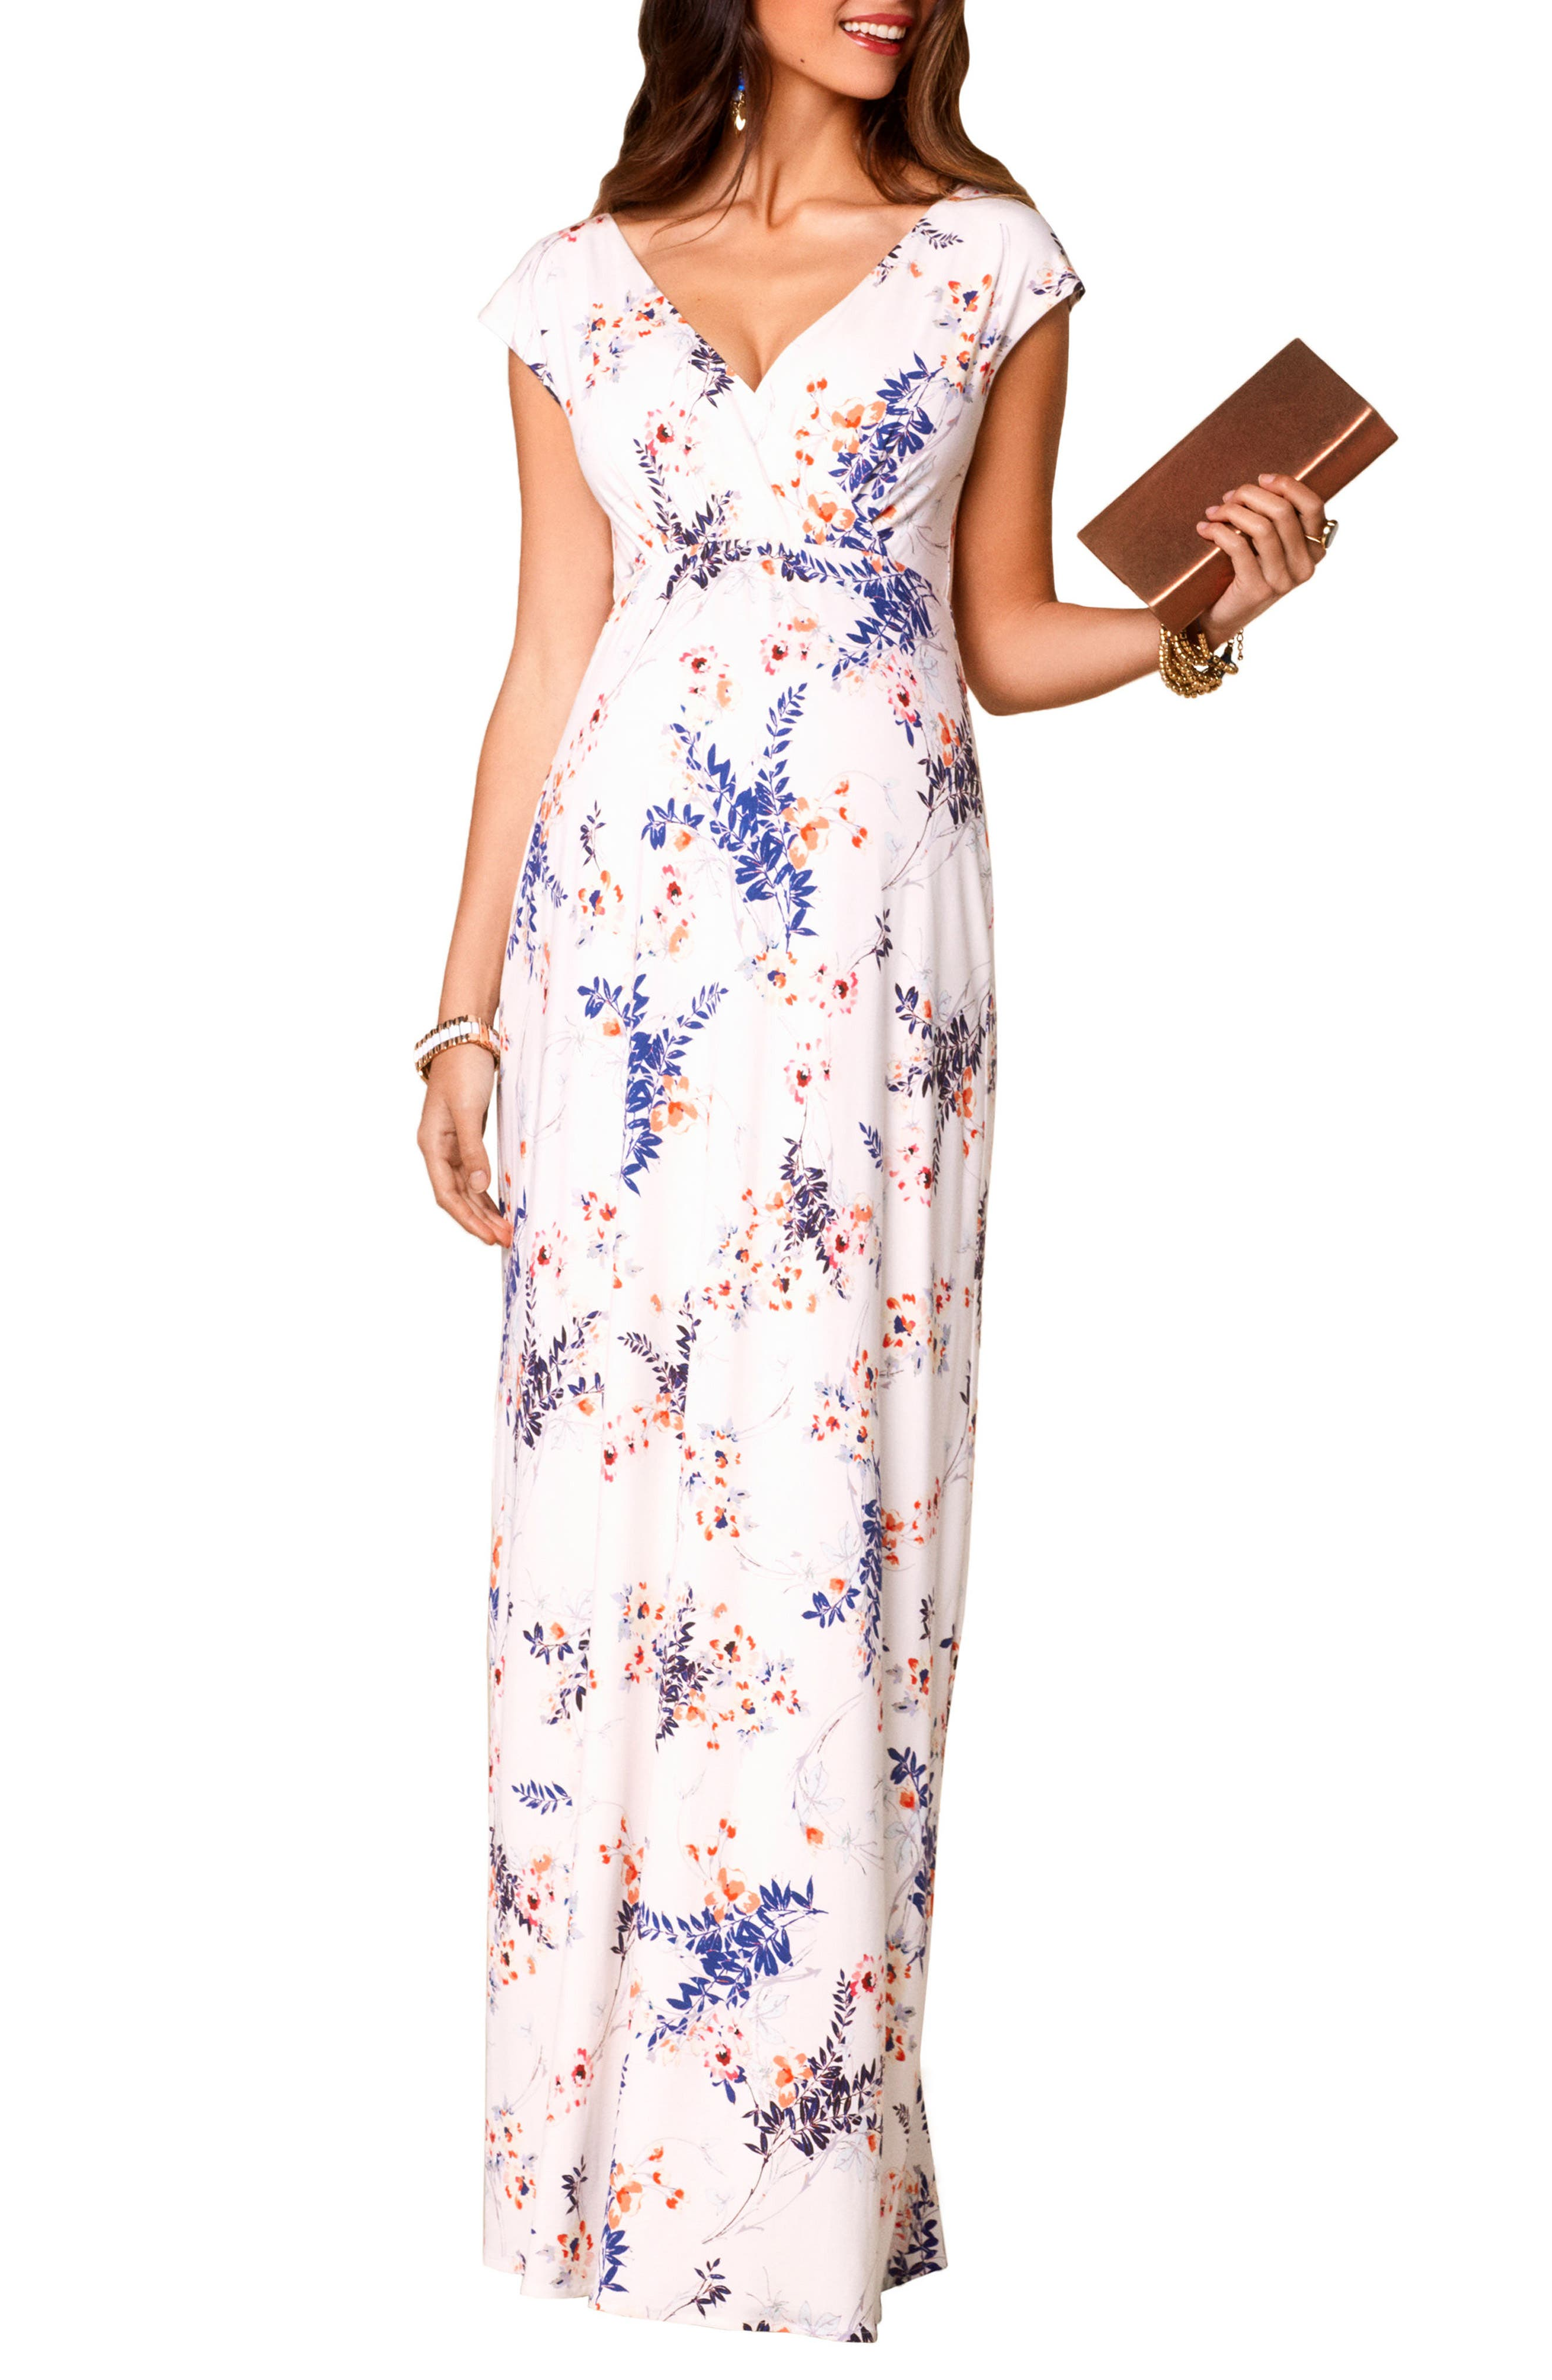 Tiffany Rose Alana Maternity/Nursing Maxi Dress